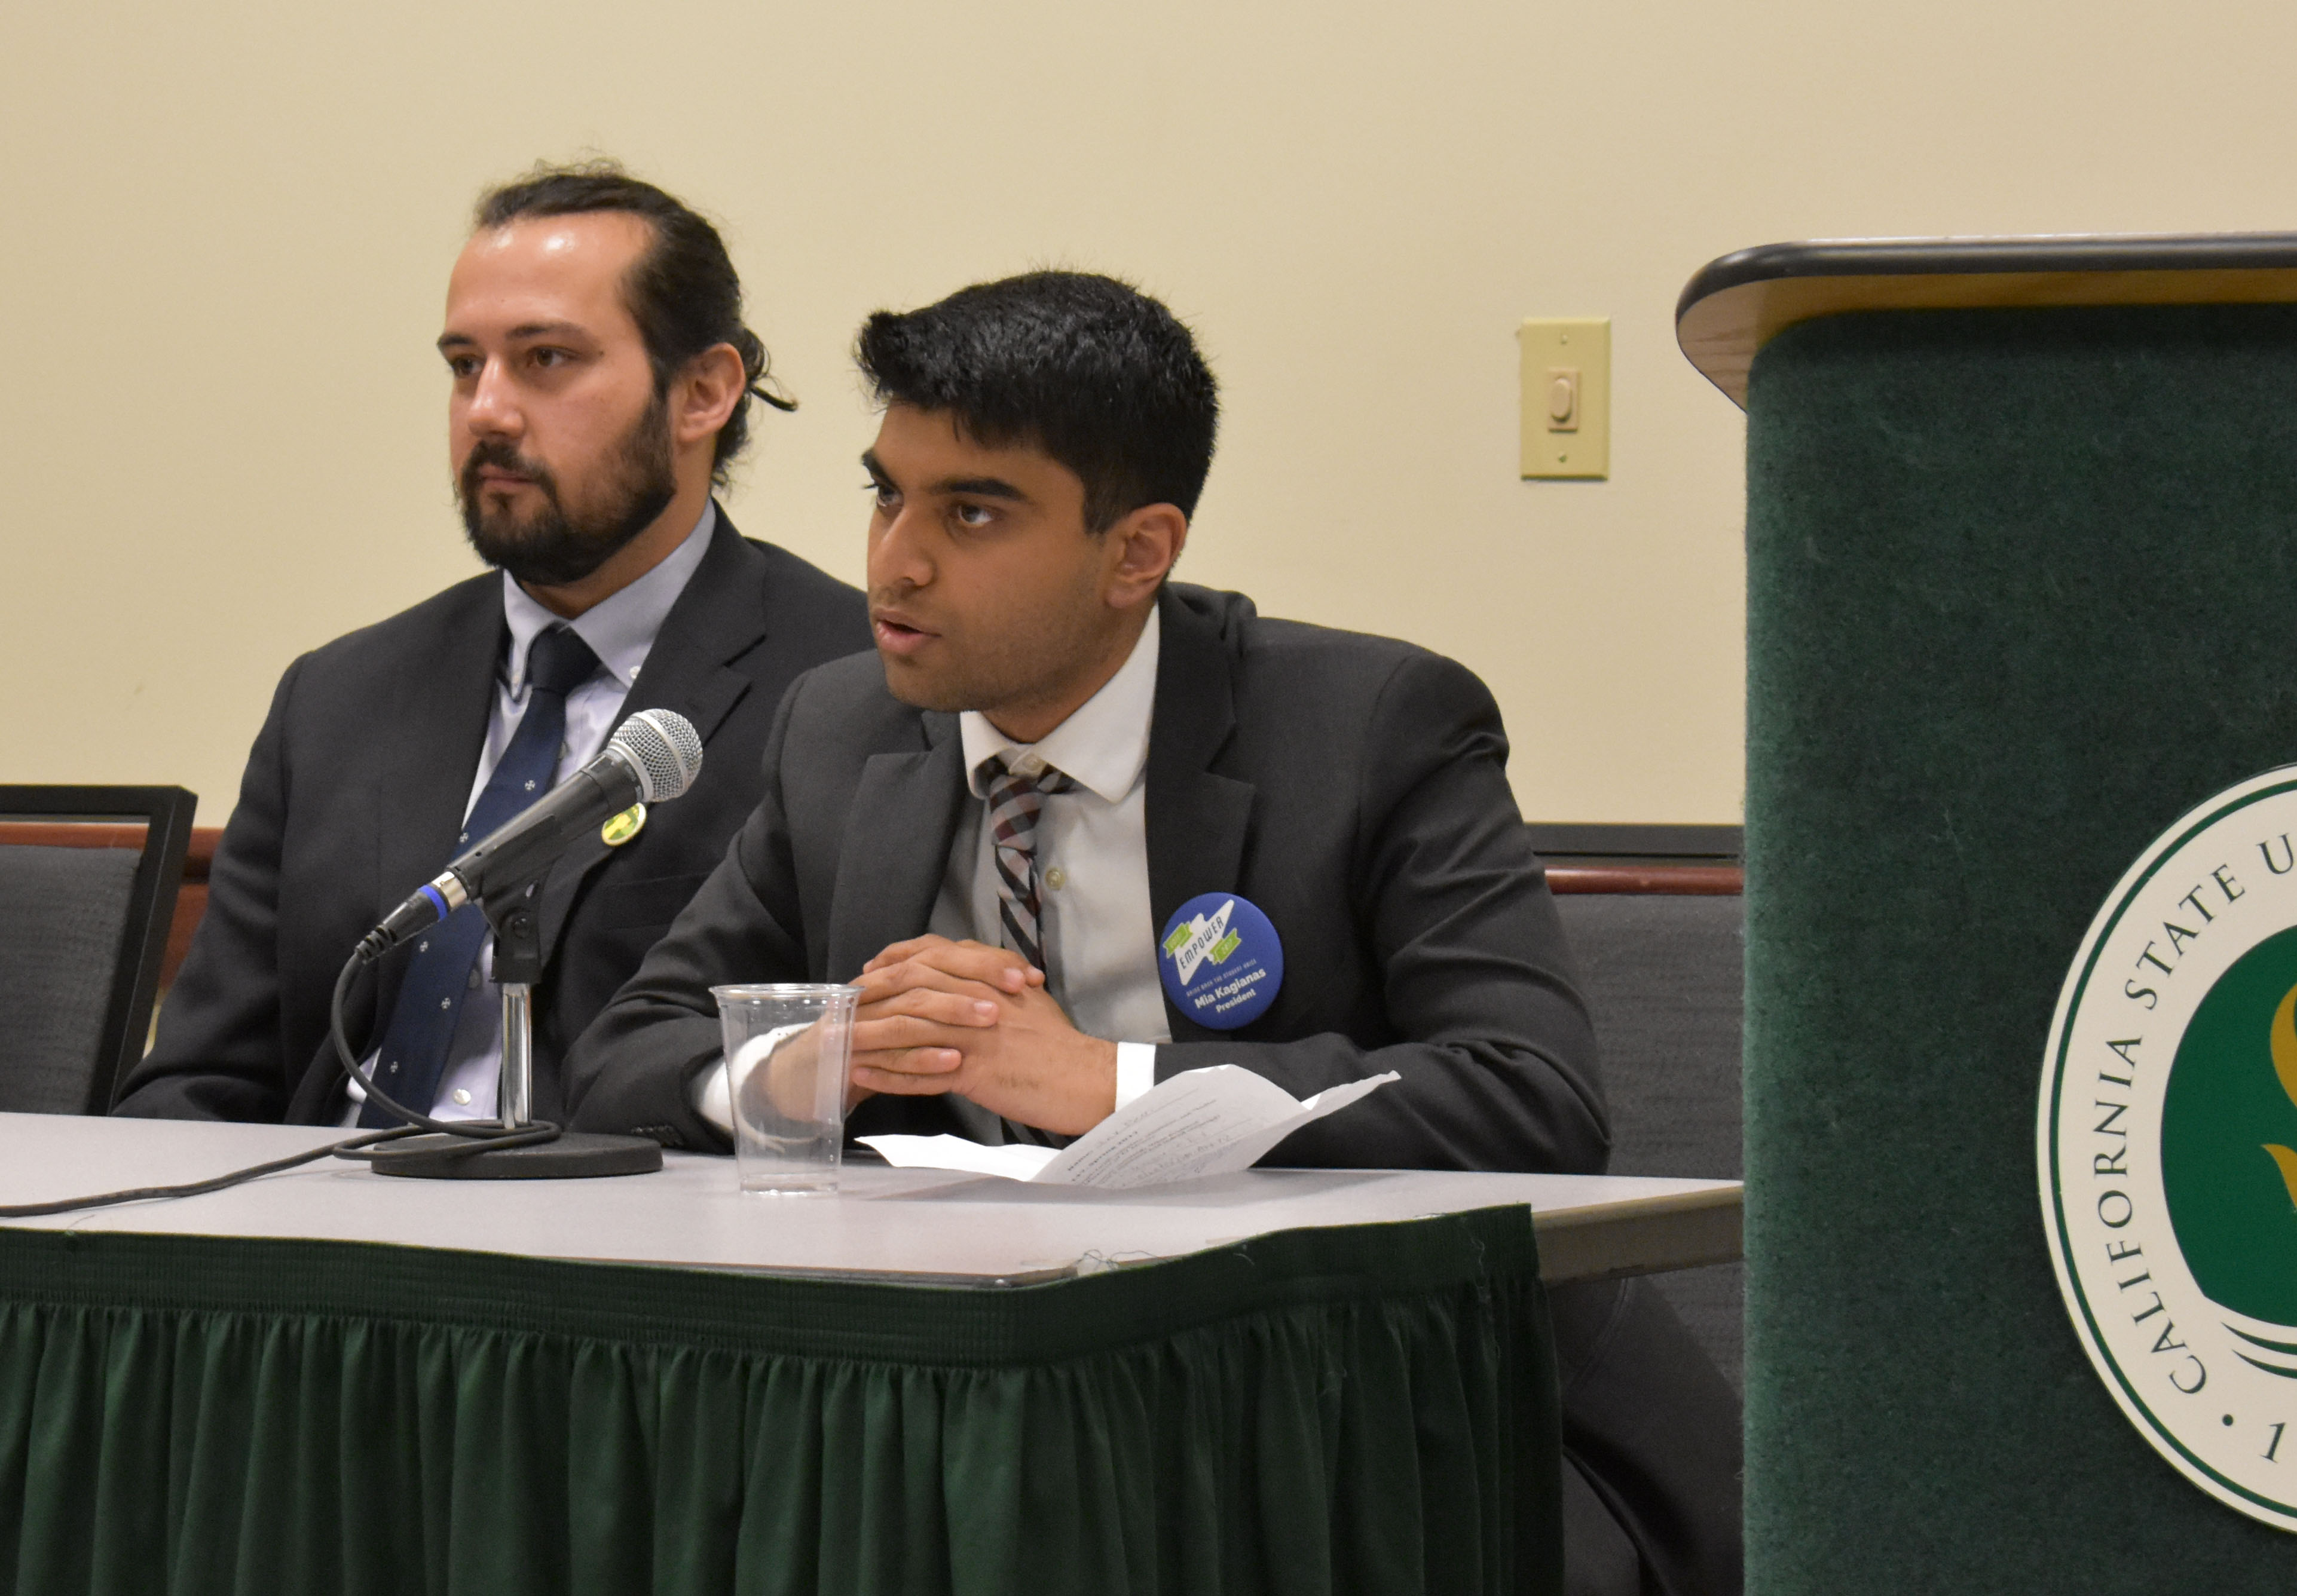 Director of Social Sciences and Interdisciplinary Studies candidates Danial McGhie, left, and Jay Passi, right, speak on campus at a Sacramento State ASI candidate forum on March 30 in the Forest Suite of the University Union. (Photo by Cassie Dickman)